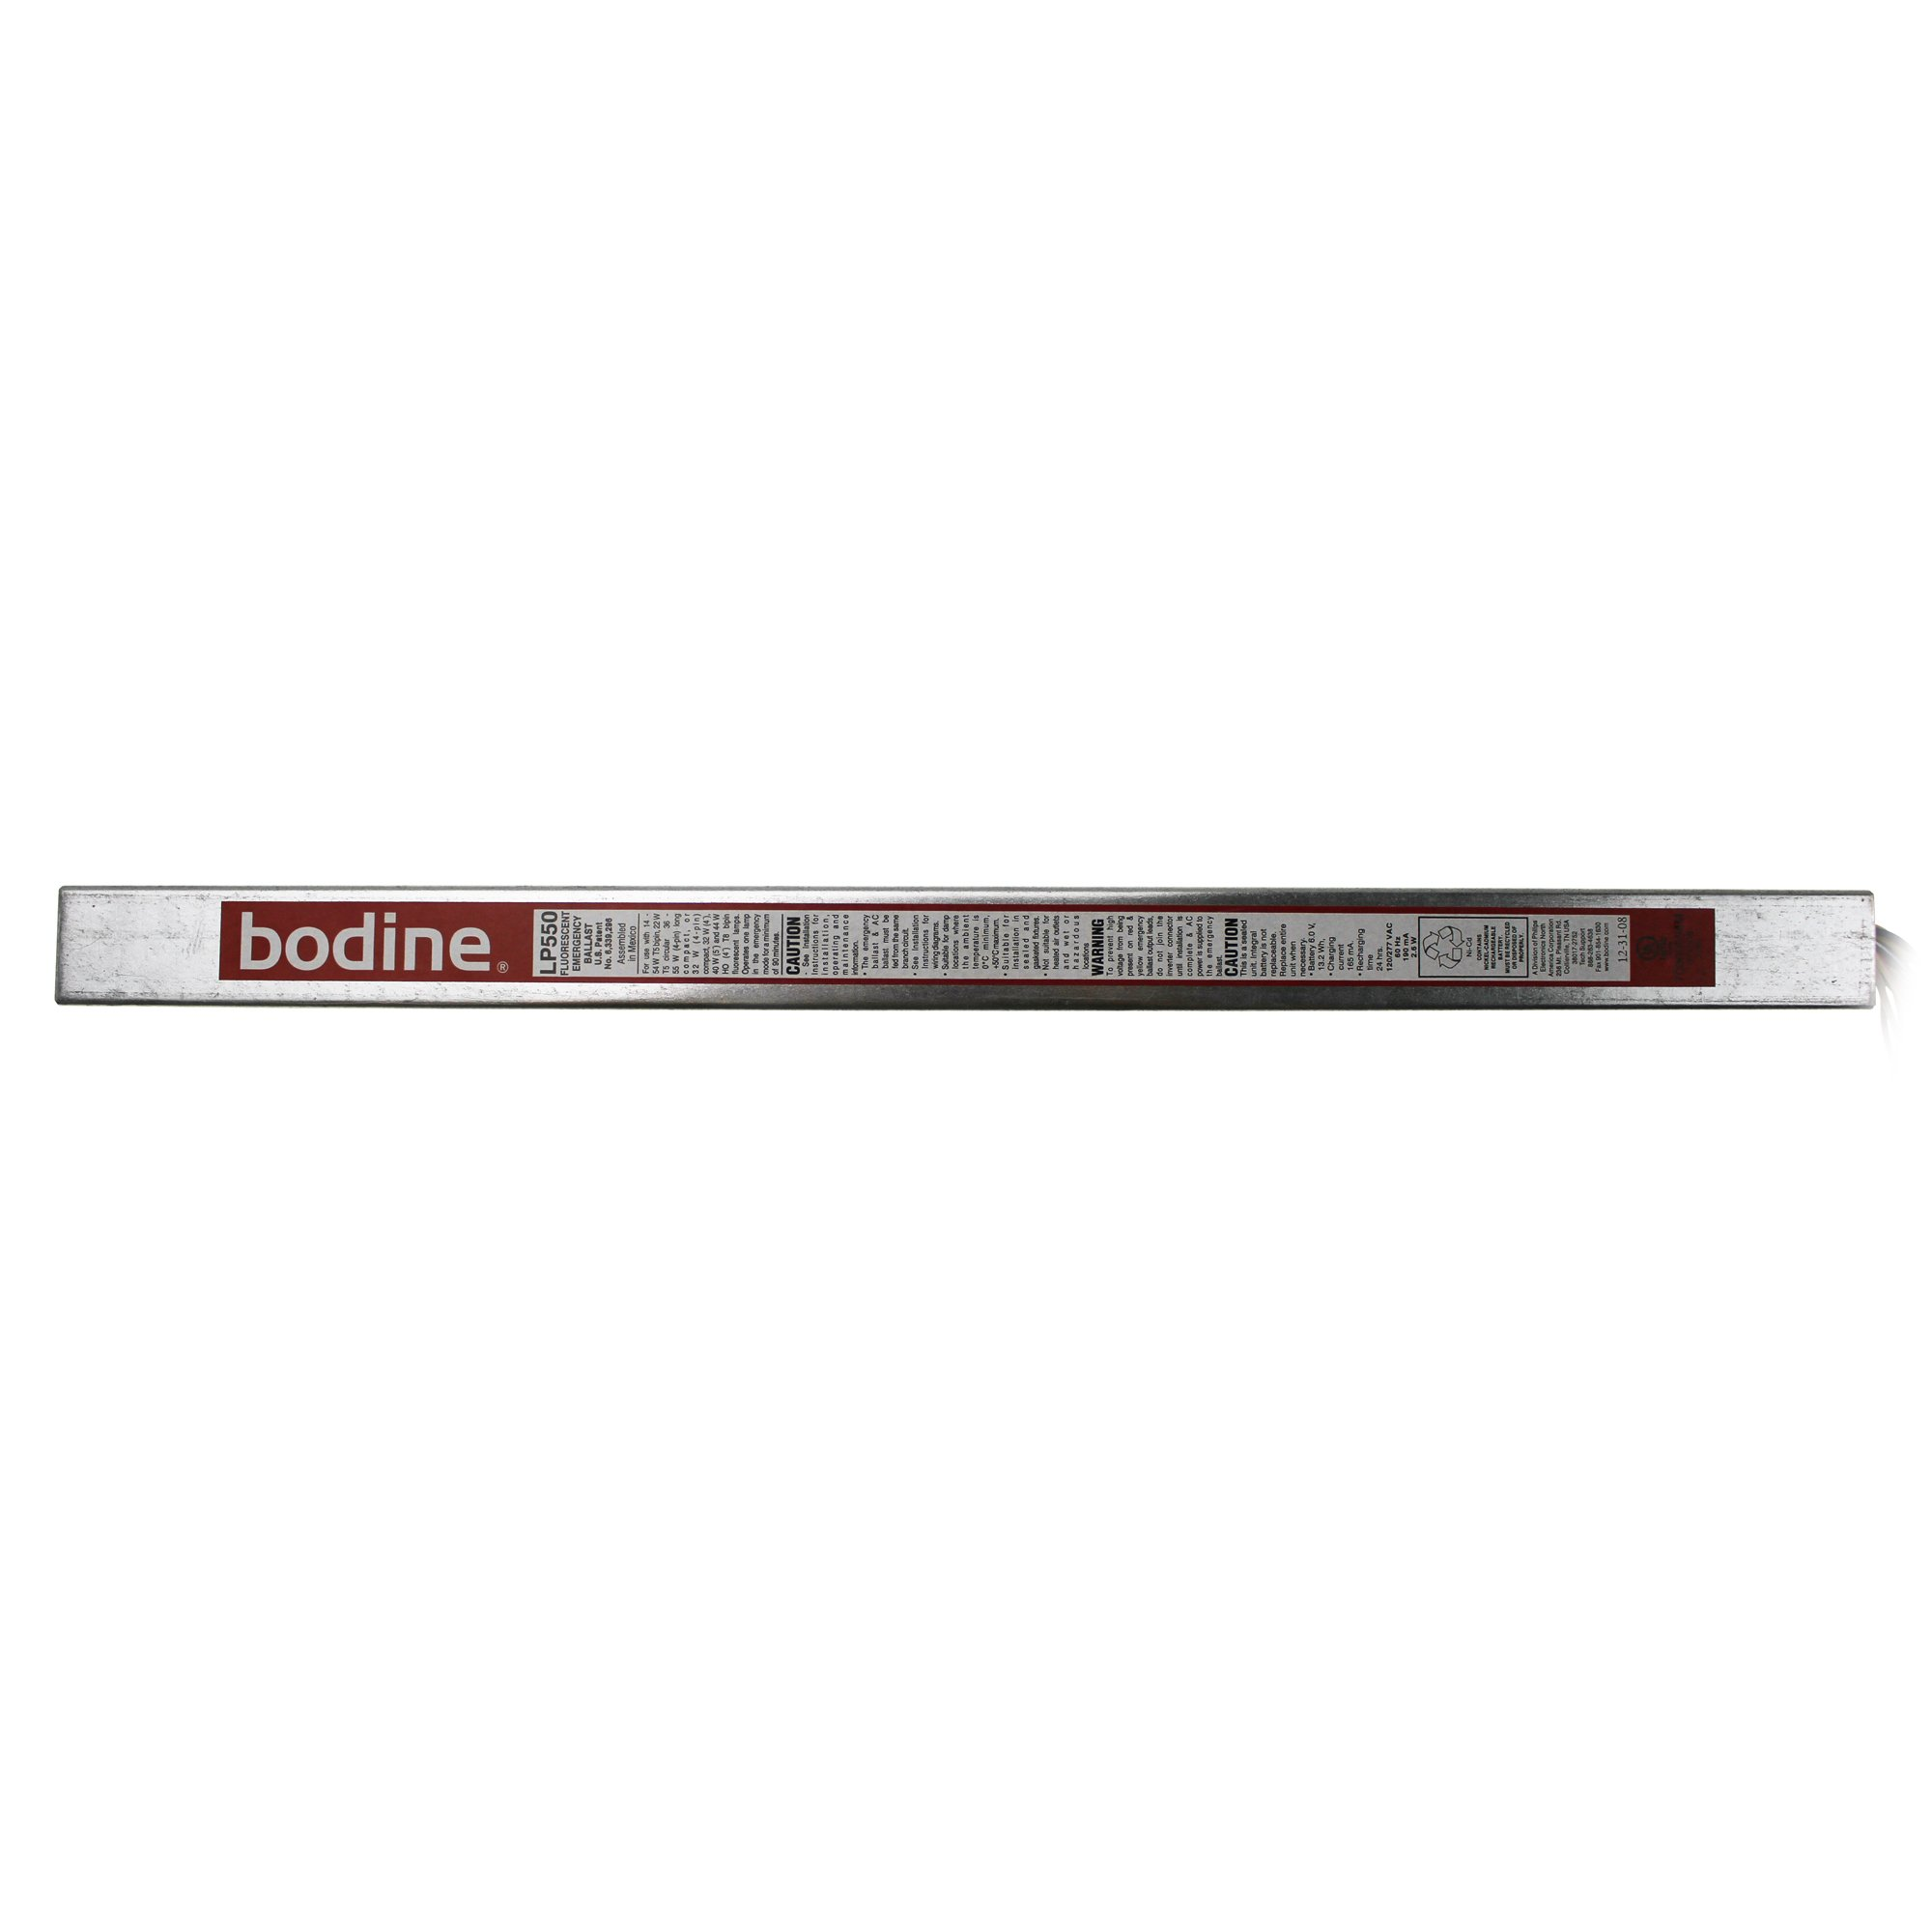 Bodine LP550 (1) HO T5 and T8 Lamps Lamp Low Profile Fluorescent Emergency Lighting Ballast 120/277 Volt AC